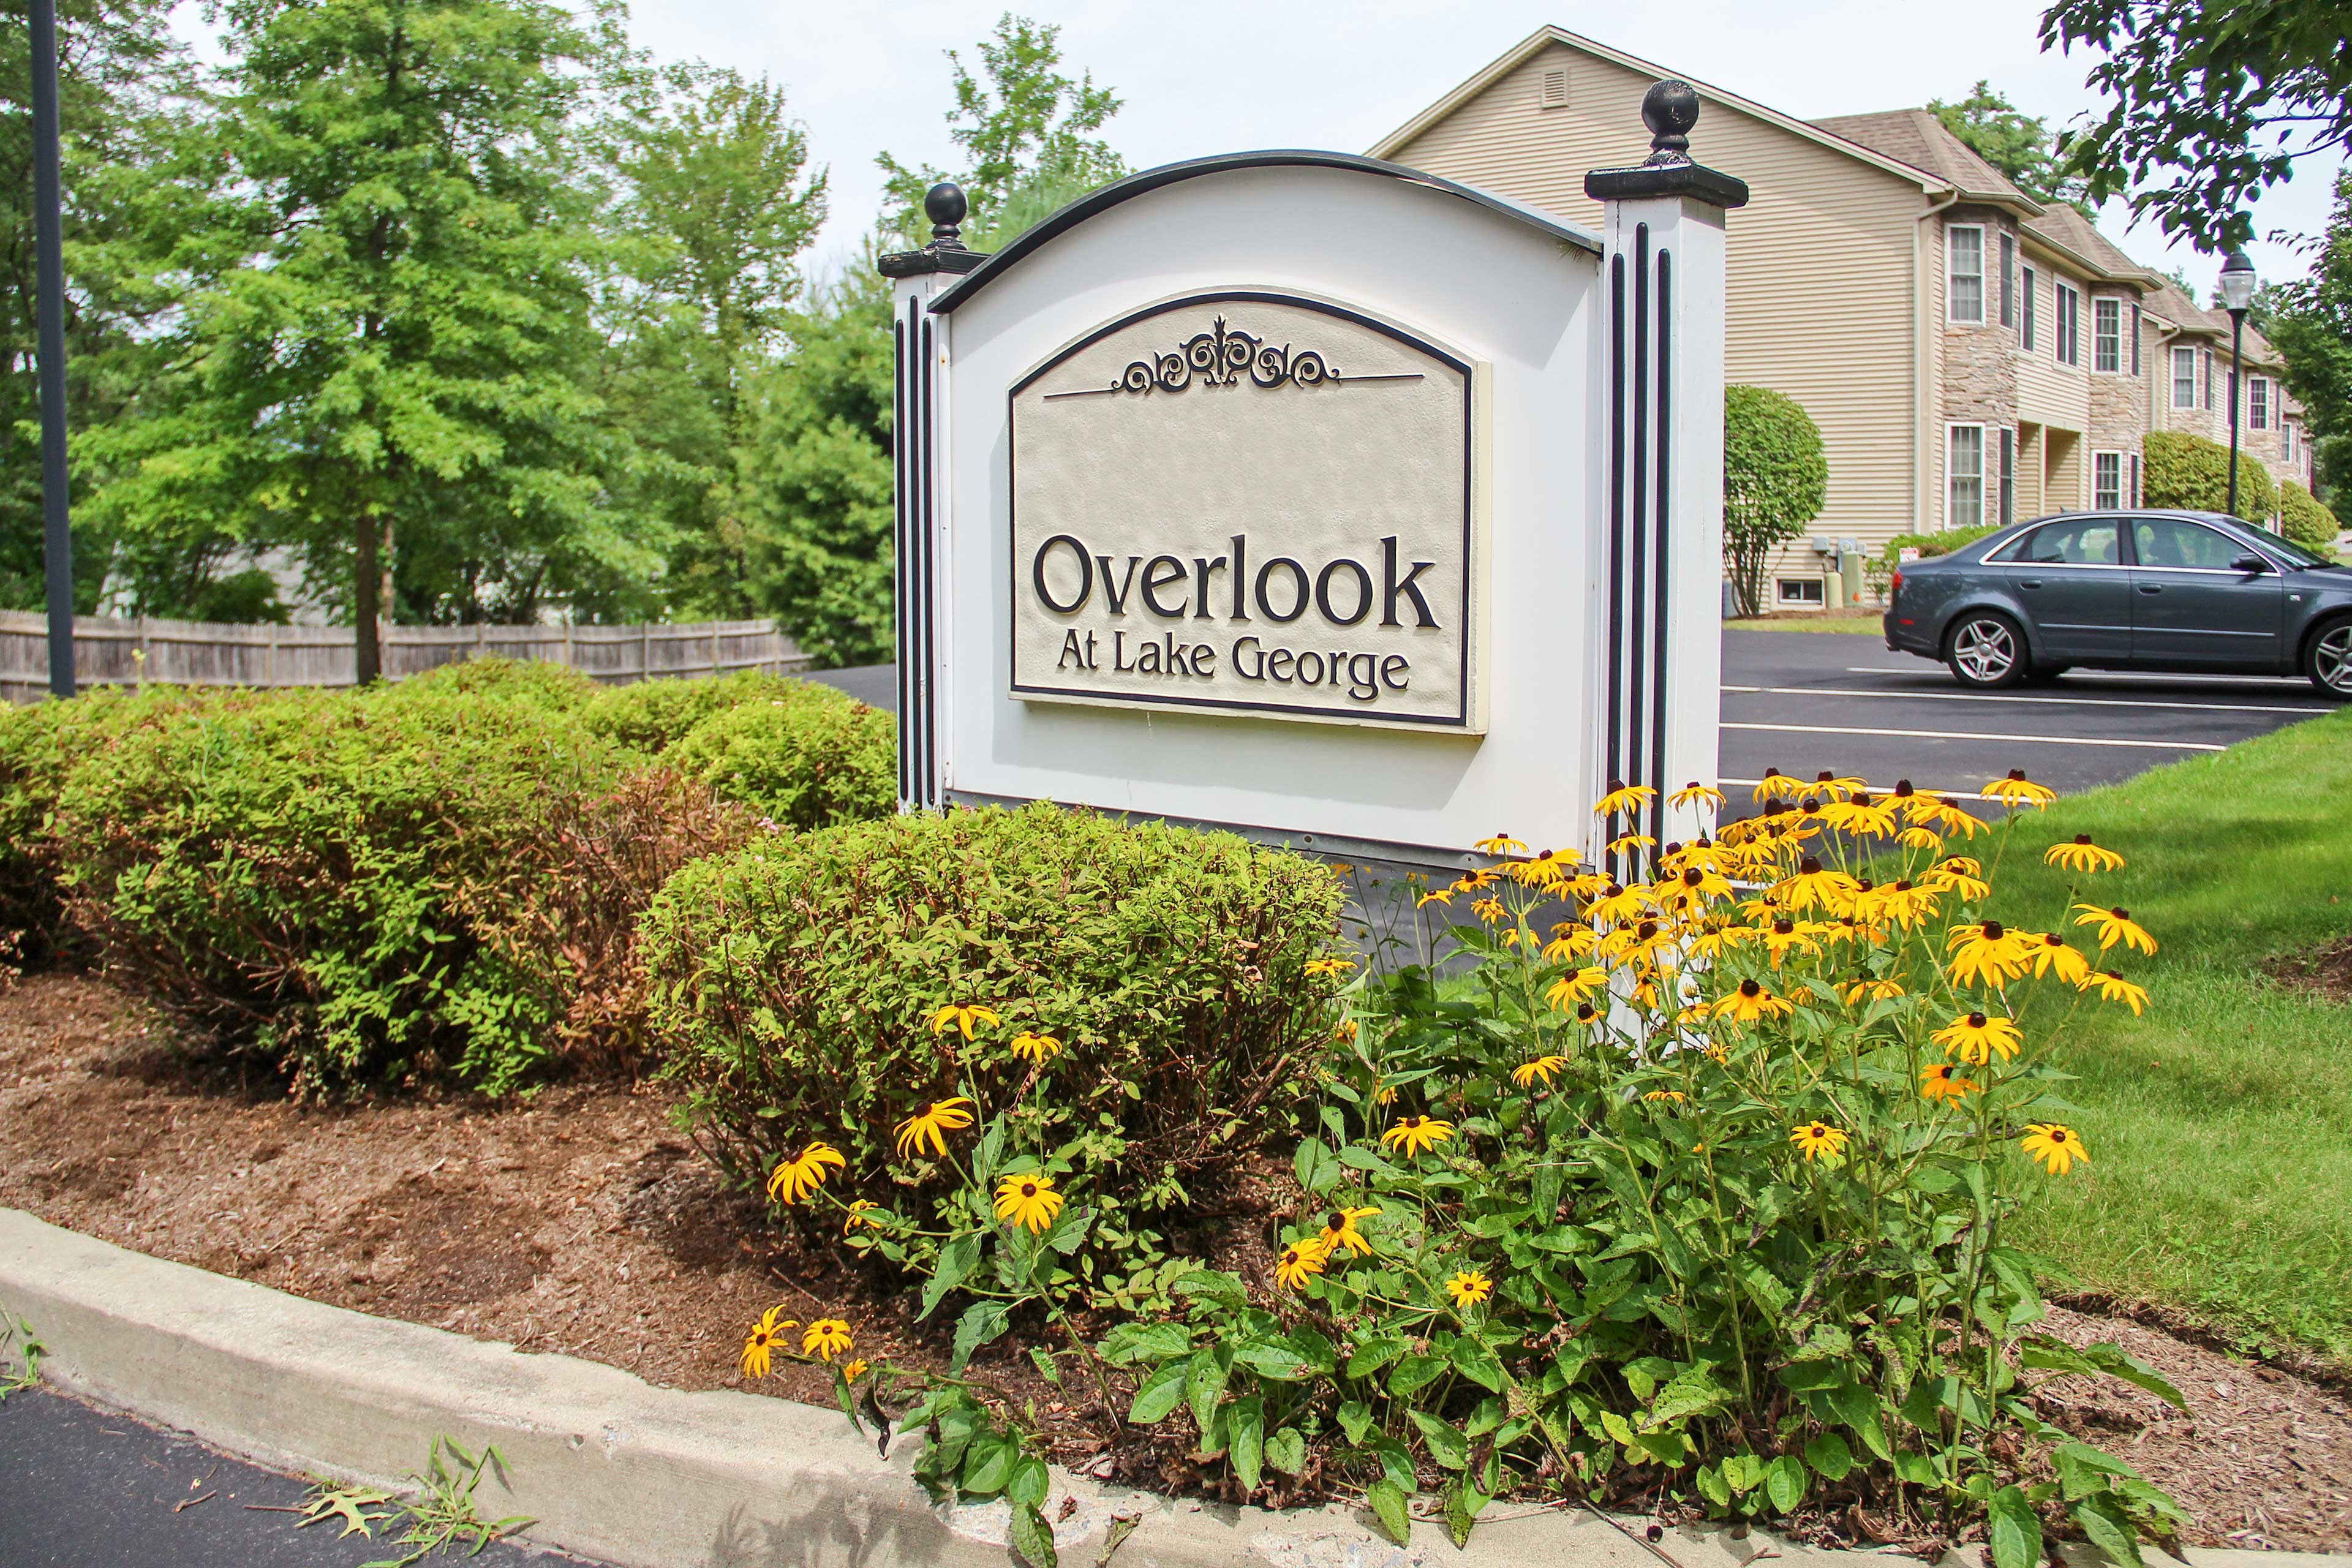 Overlook at Lake George welcomes you to a refreshing getaway.